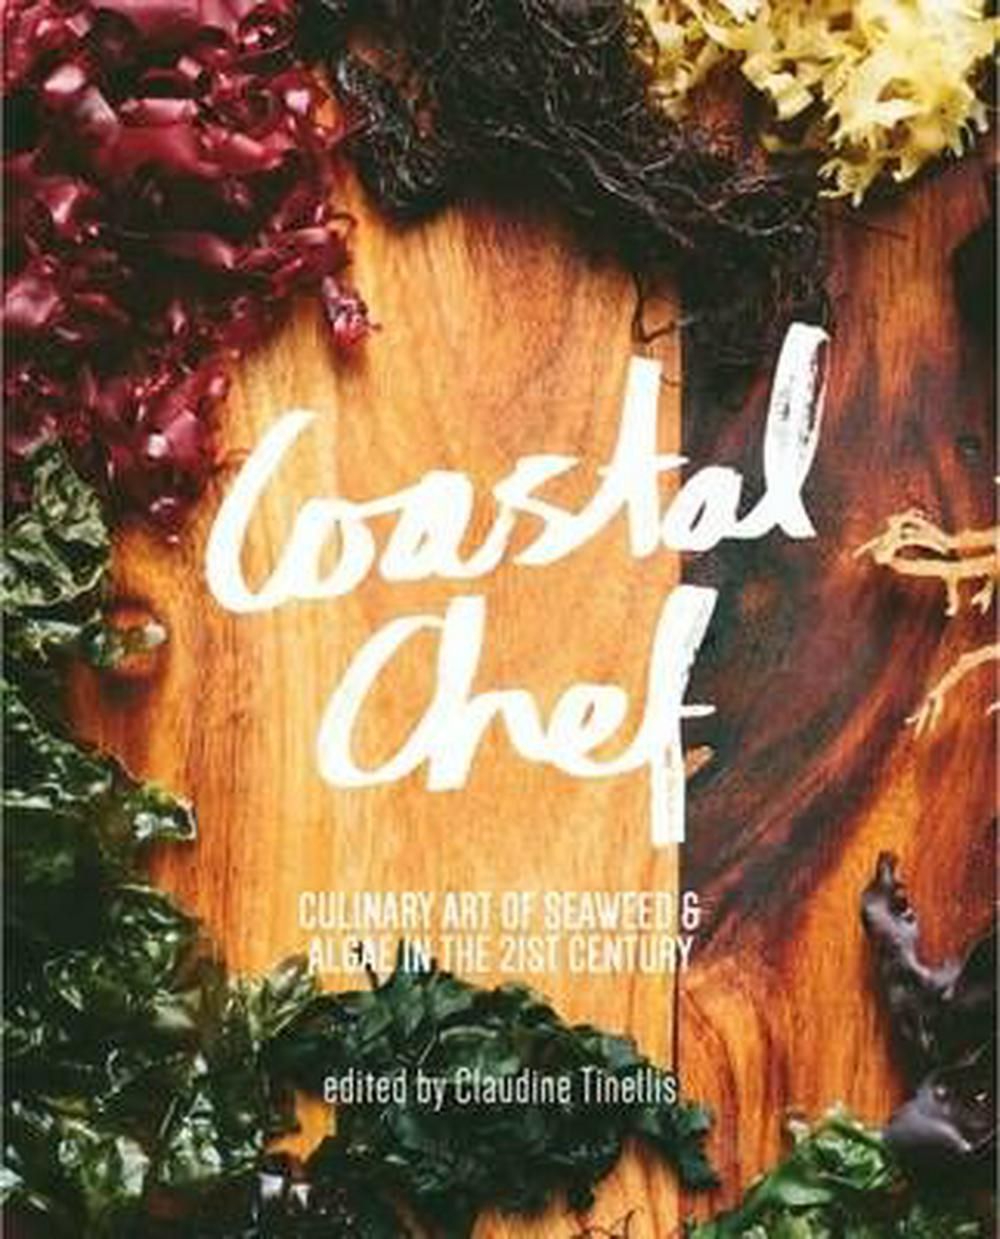 Coastal Chef by Claudine Tinellis, ISBN: 9781922134493